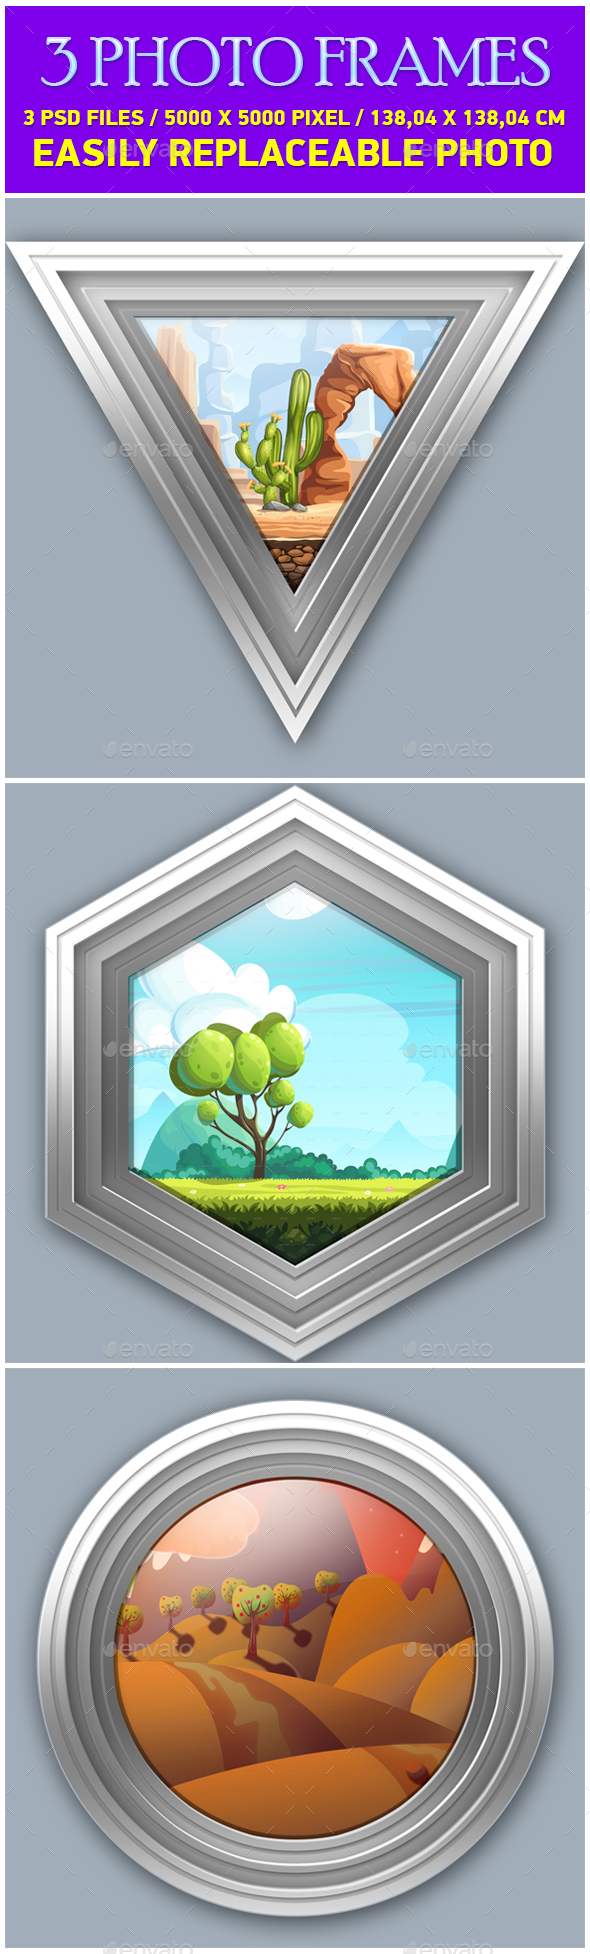 Gray Photo Frames - Photo Templates Graphics